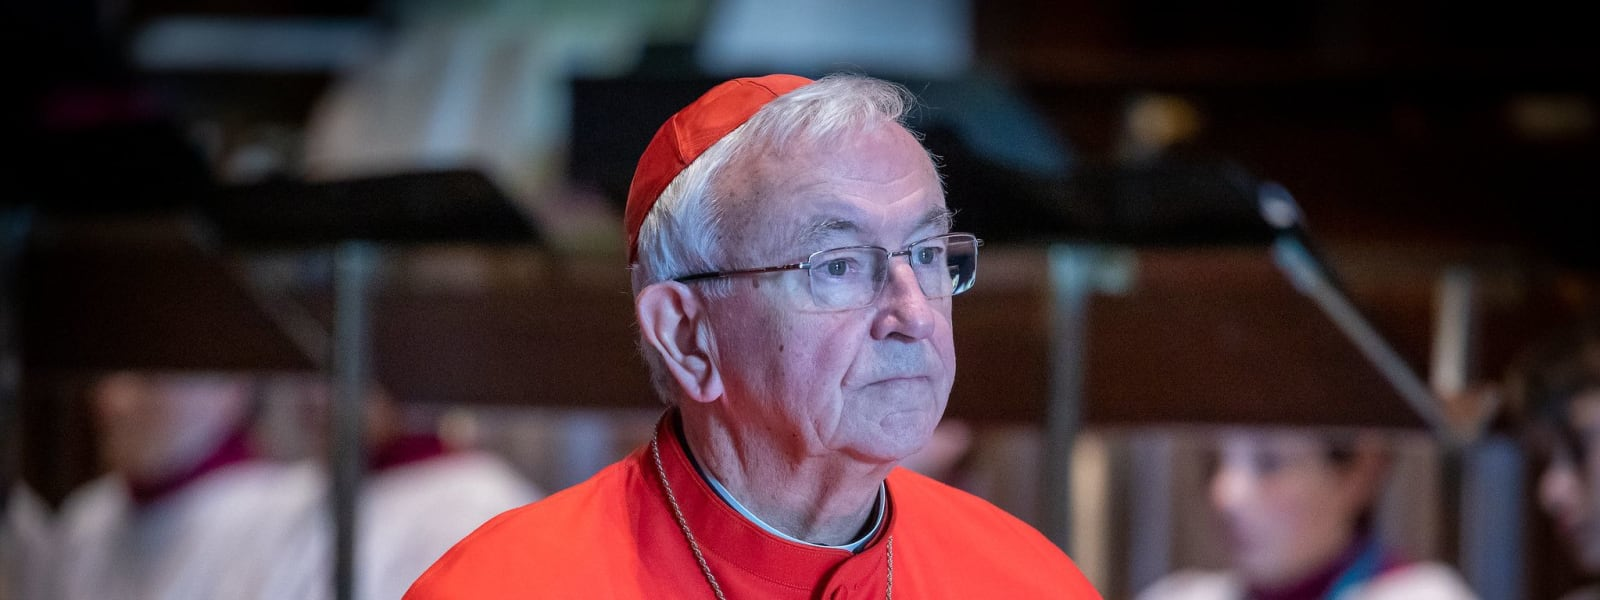 His Eminence Cardinal Vincent Nichols, Archbishop of Westminster